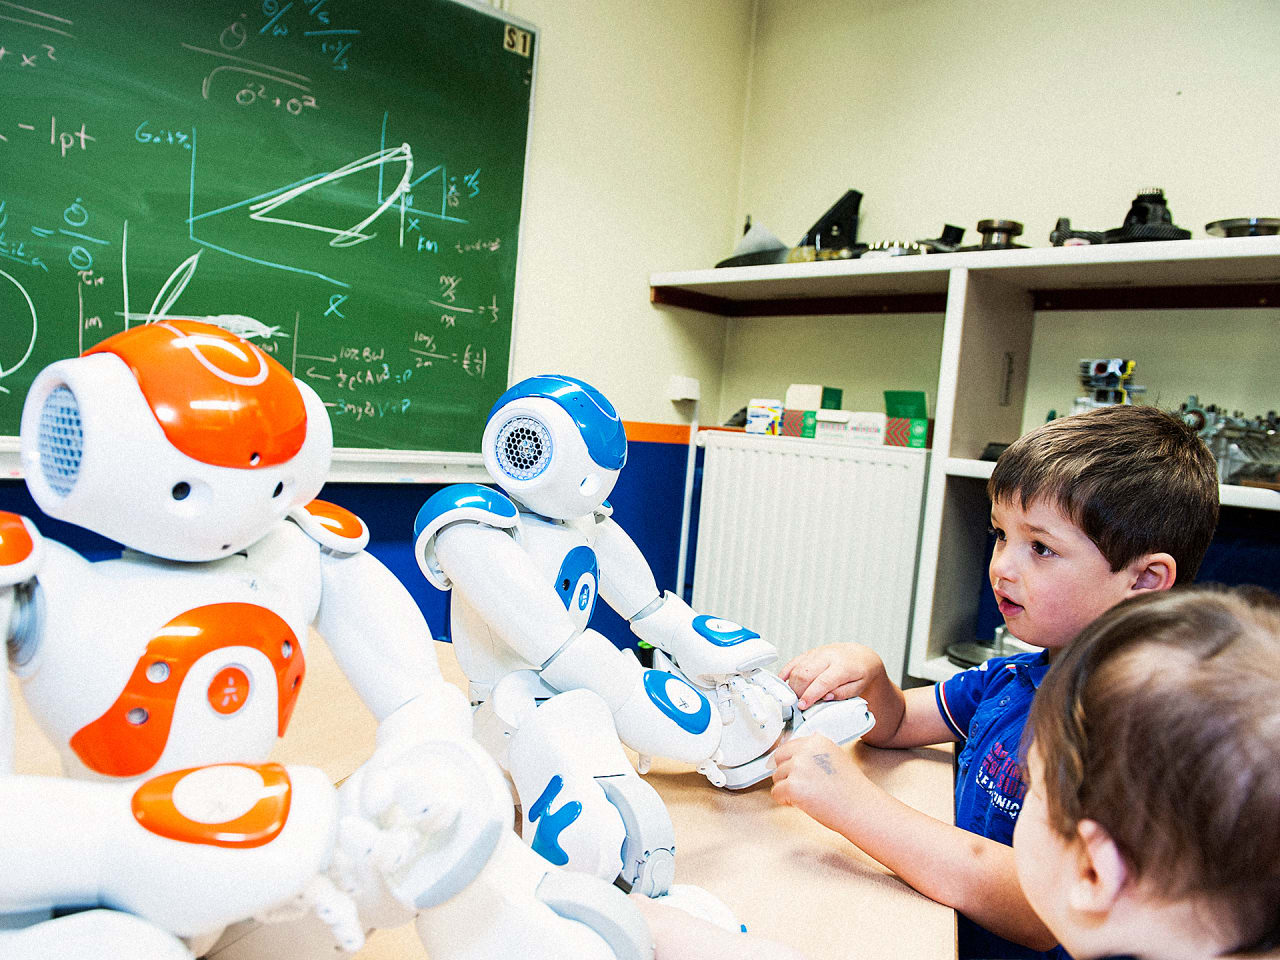 Could Robots Help Kids Learn Second Languages Faster?